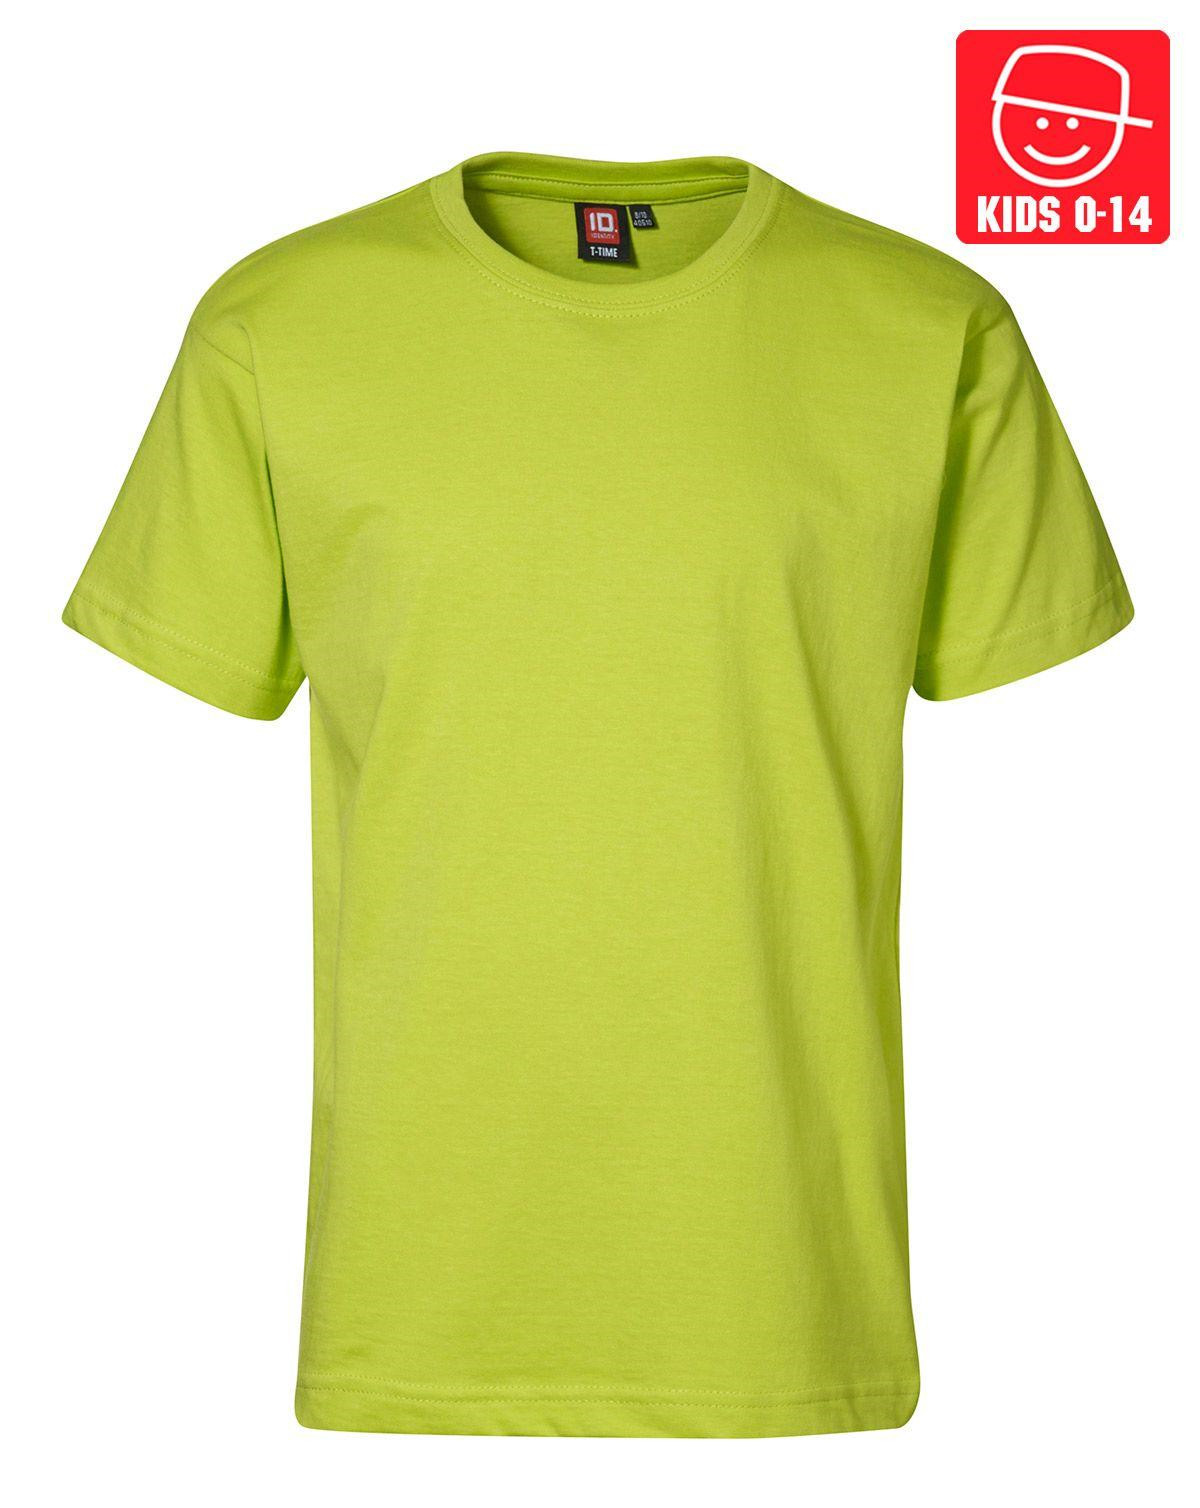 Image of   ID T-TIME T-shirt (Lime, 152)